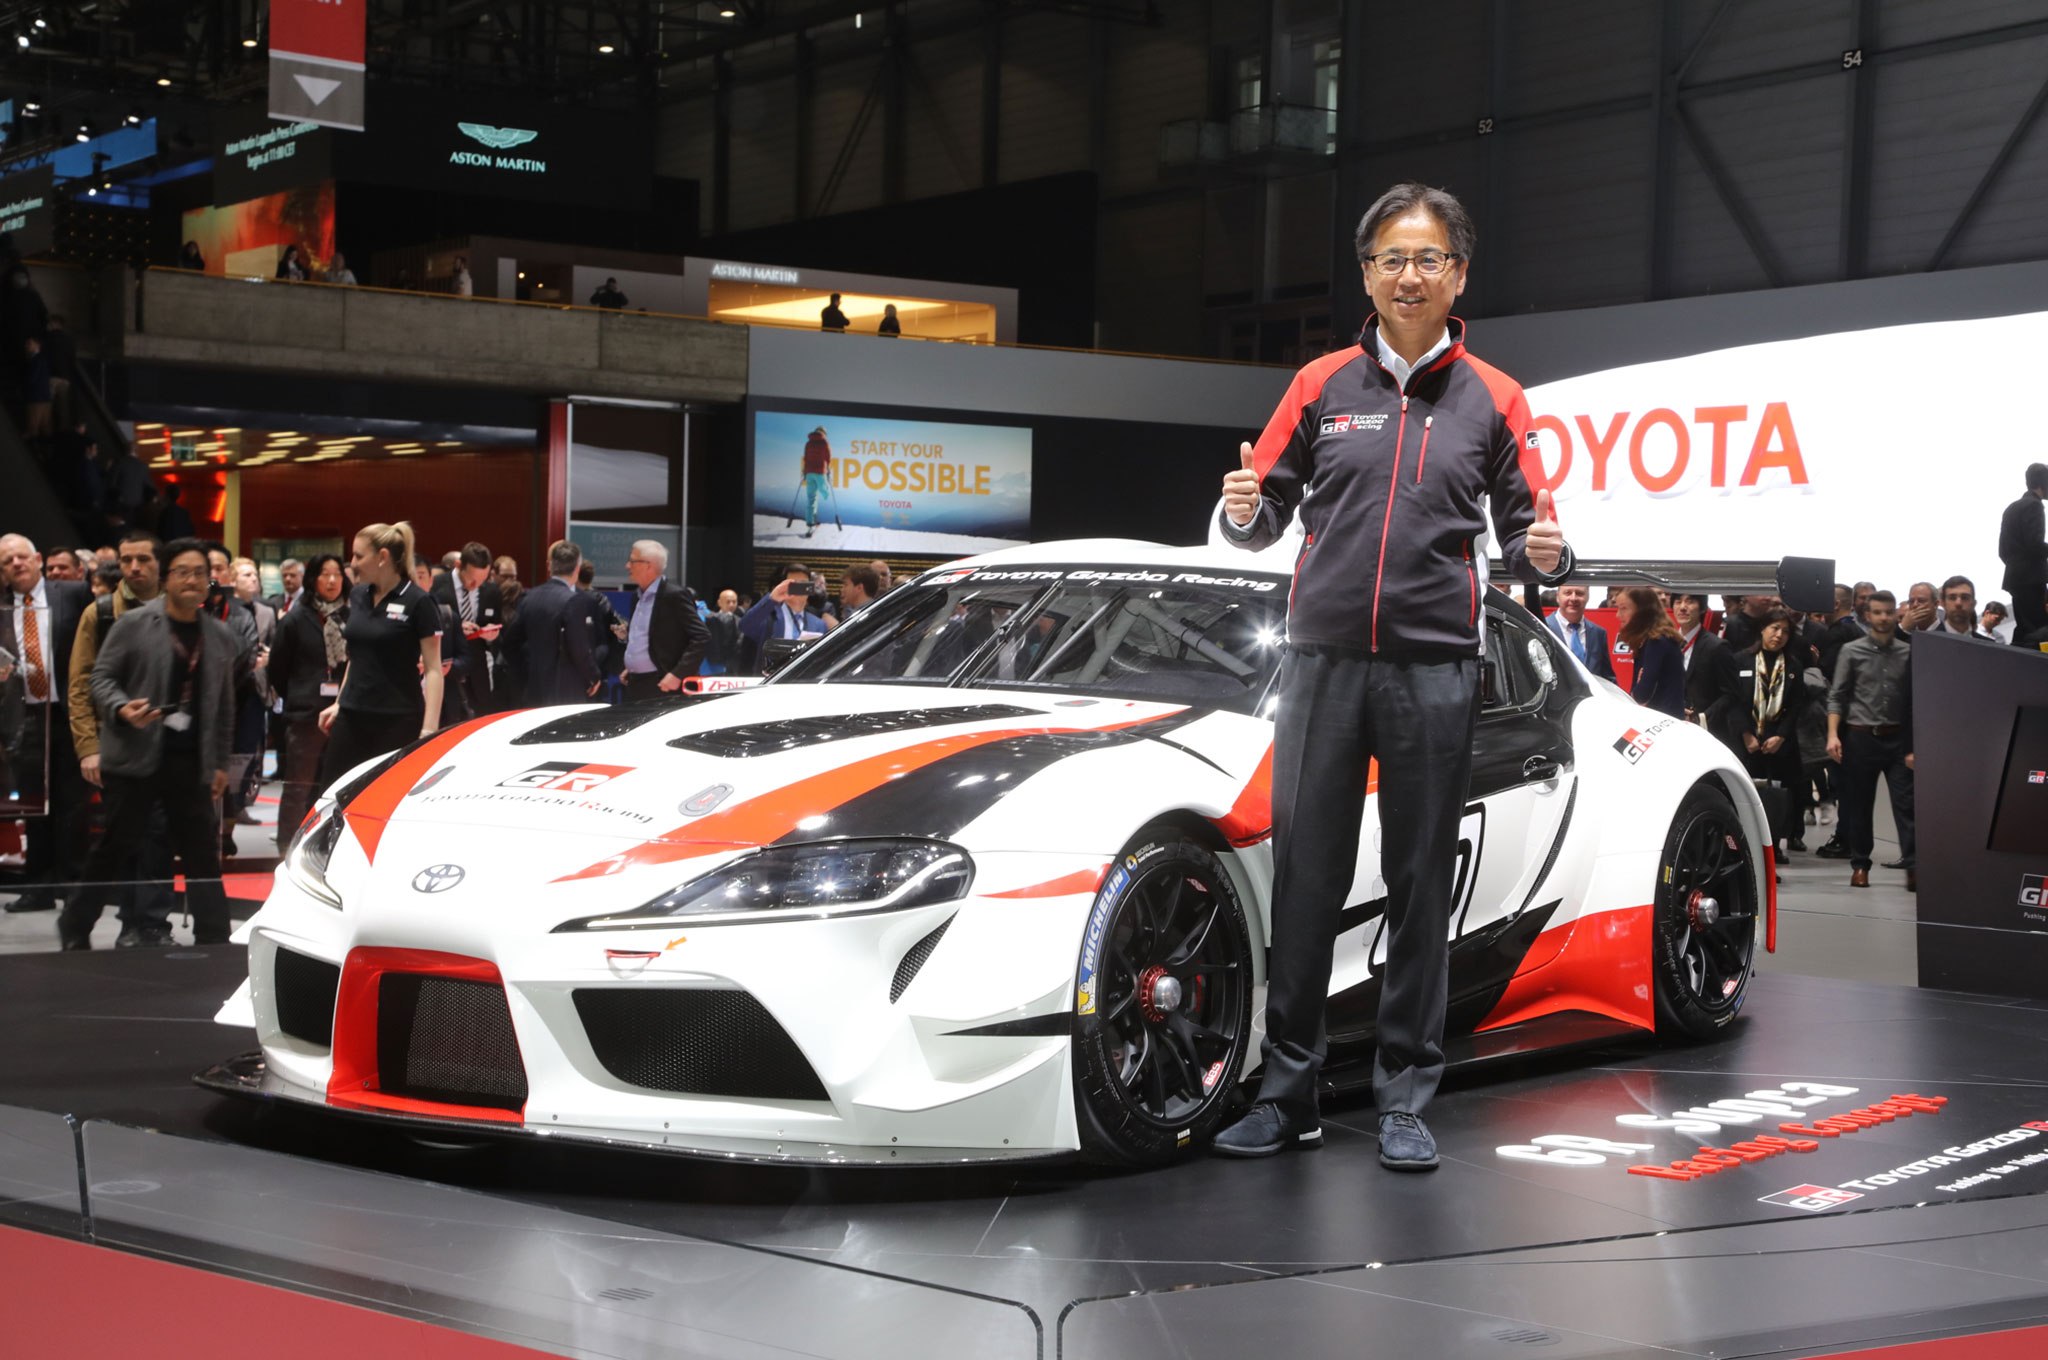 GR Toyota Supra Race Car Concept Is A Mean Racing Machine - Toyota show car